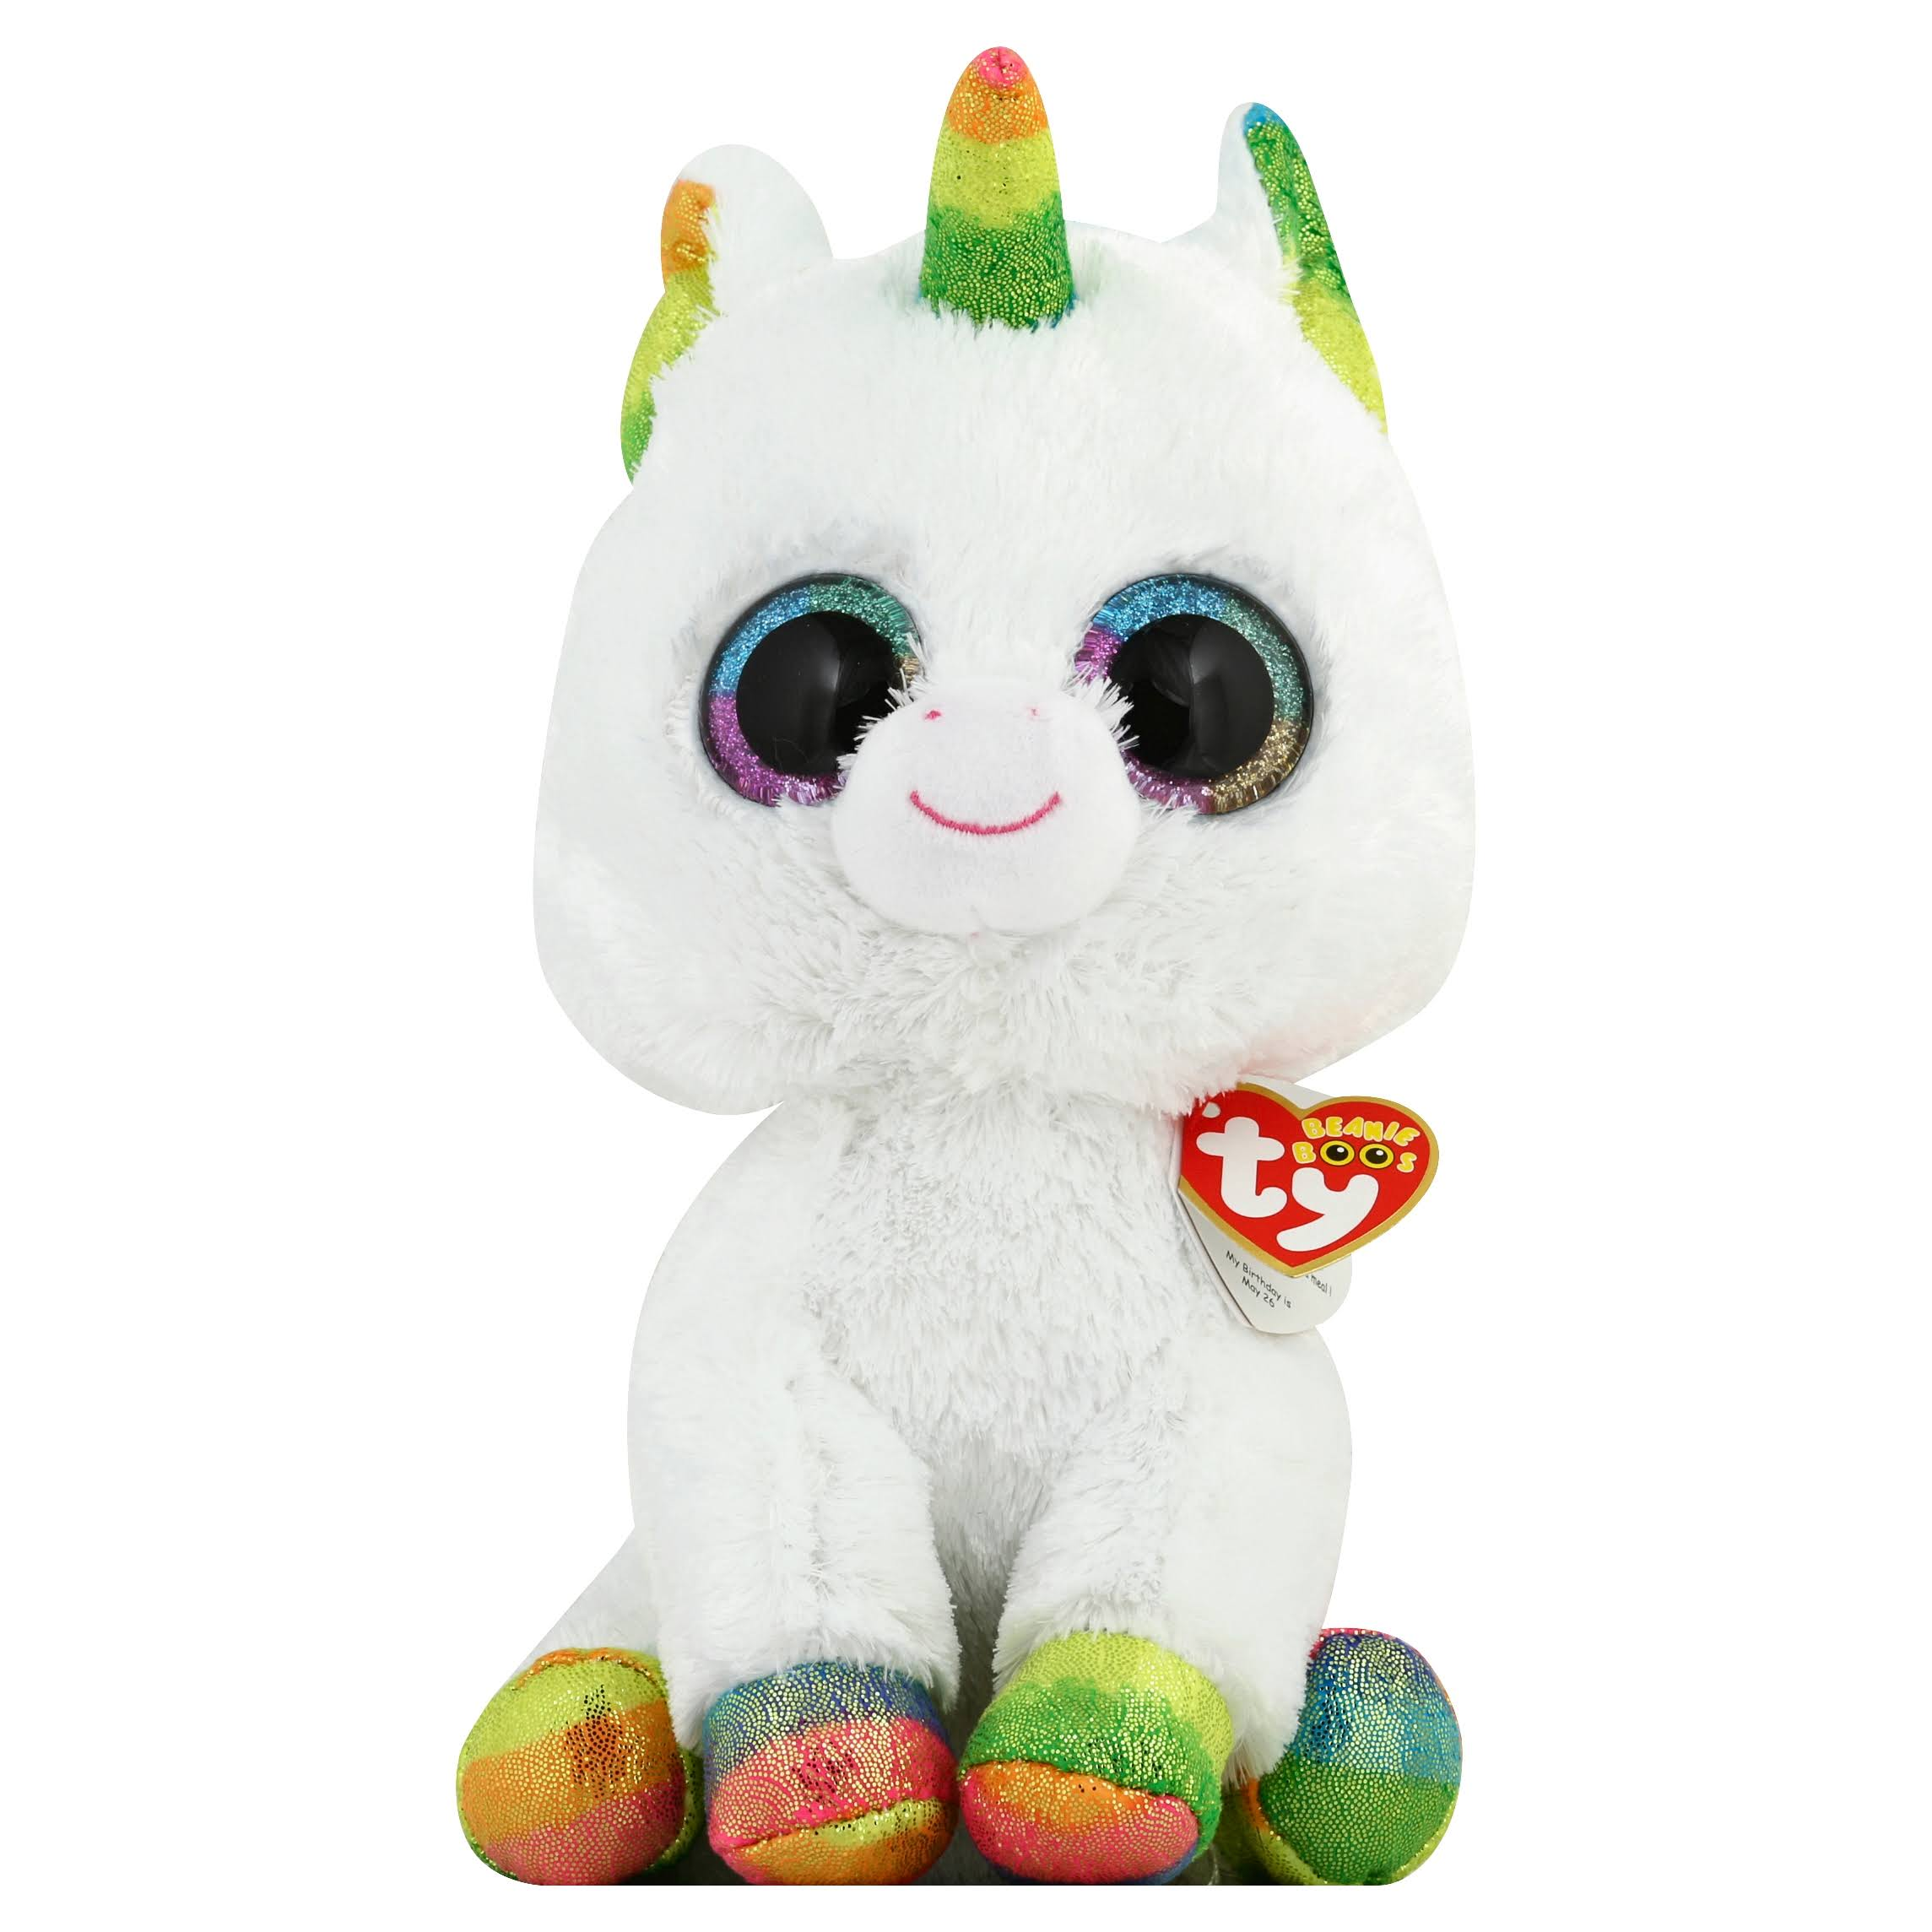 2017 Ty Beanie Boos Plush Toy - Pixie the Unicorn, Medium, 9""